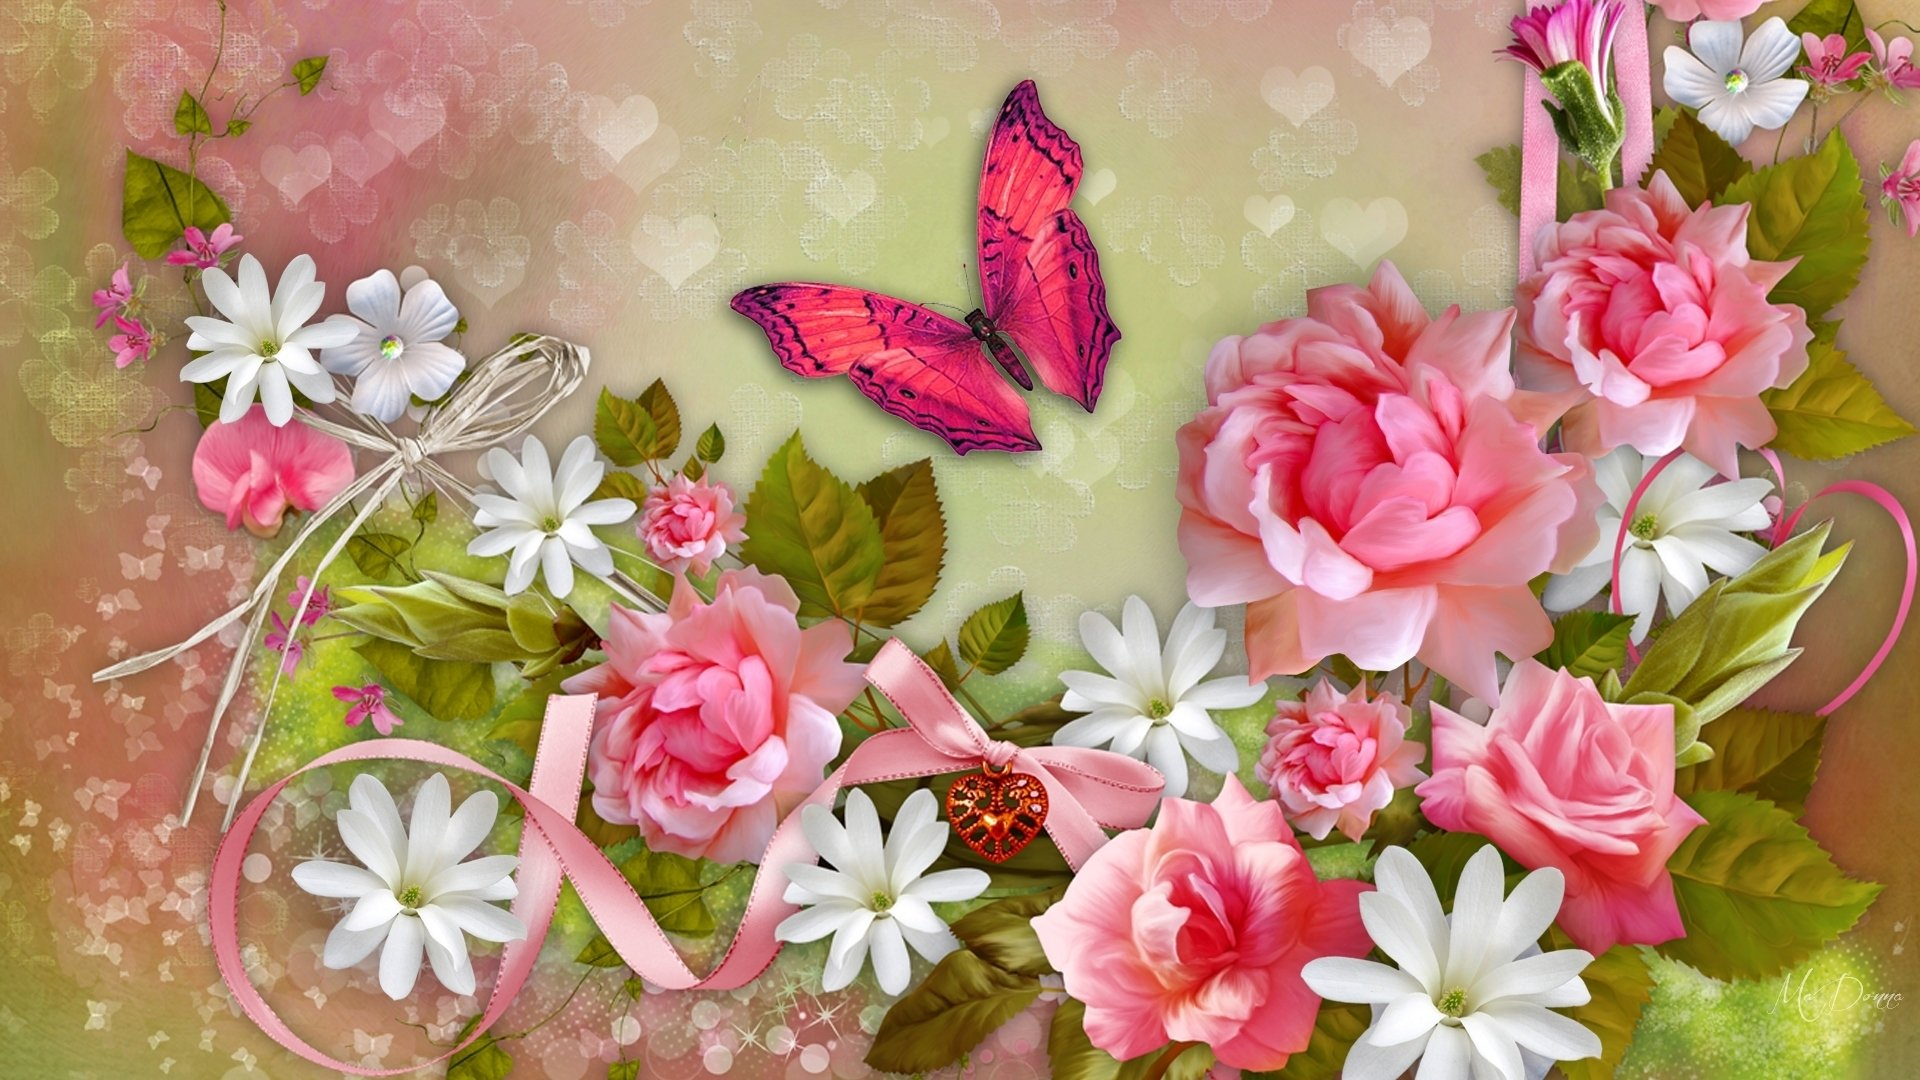 Wallpapers Id - - Beautiful Butterfly And Flower , HD Wallpaper & Backgrounds